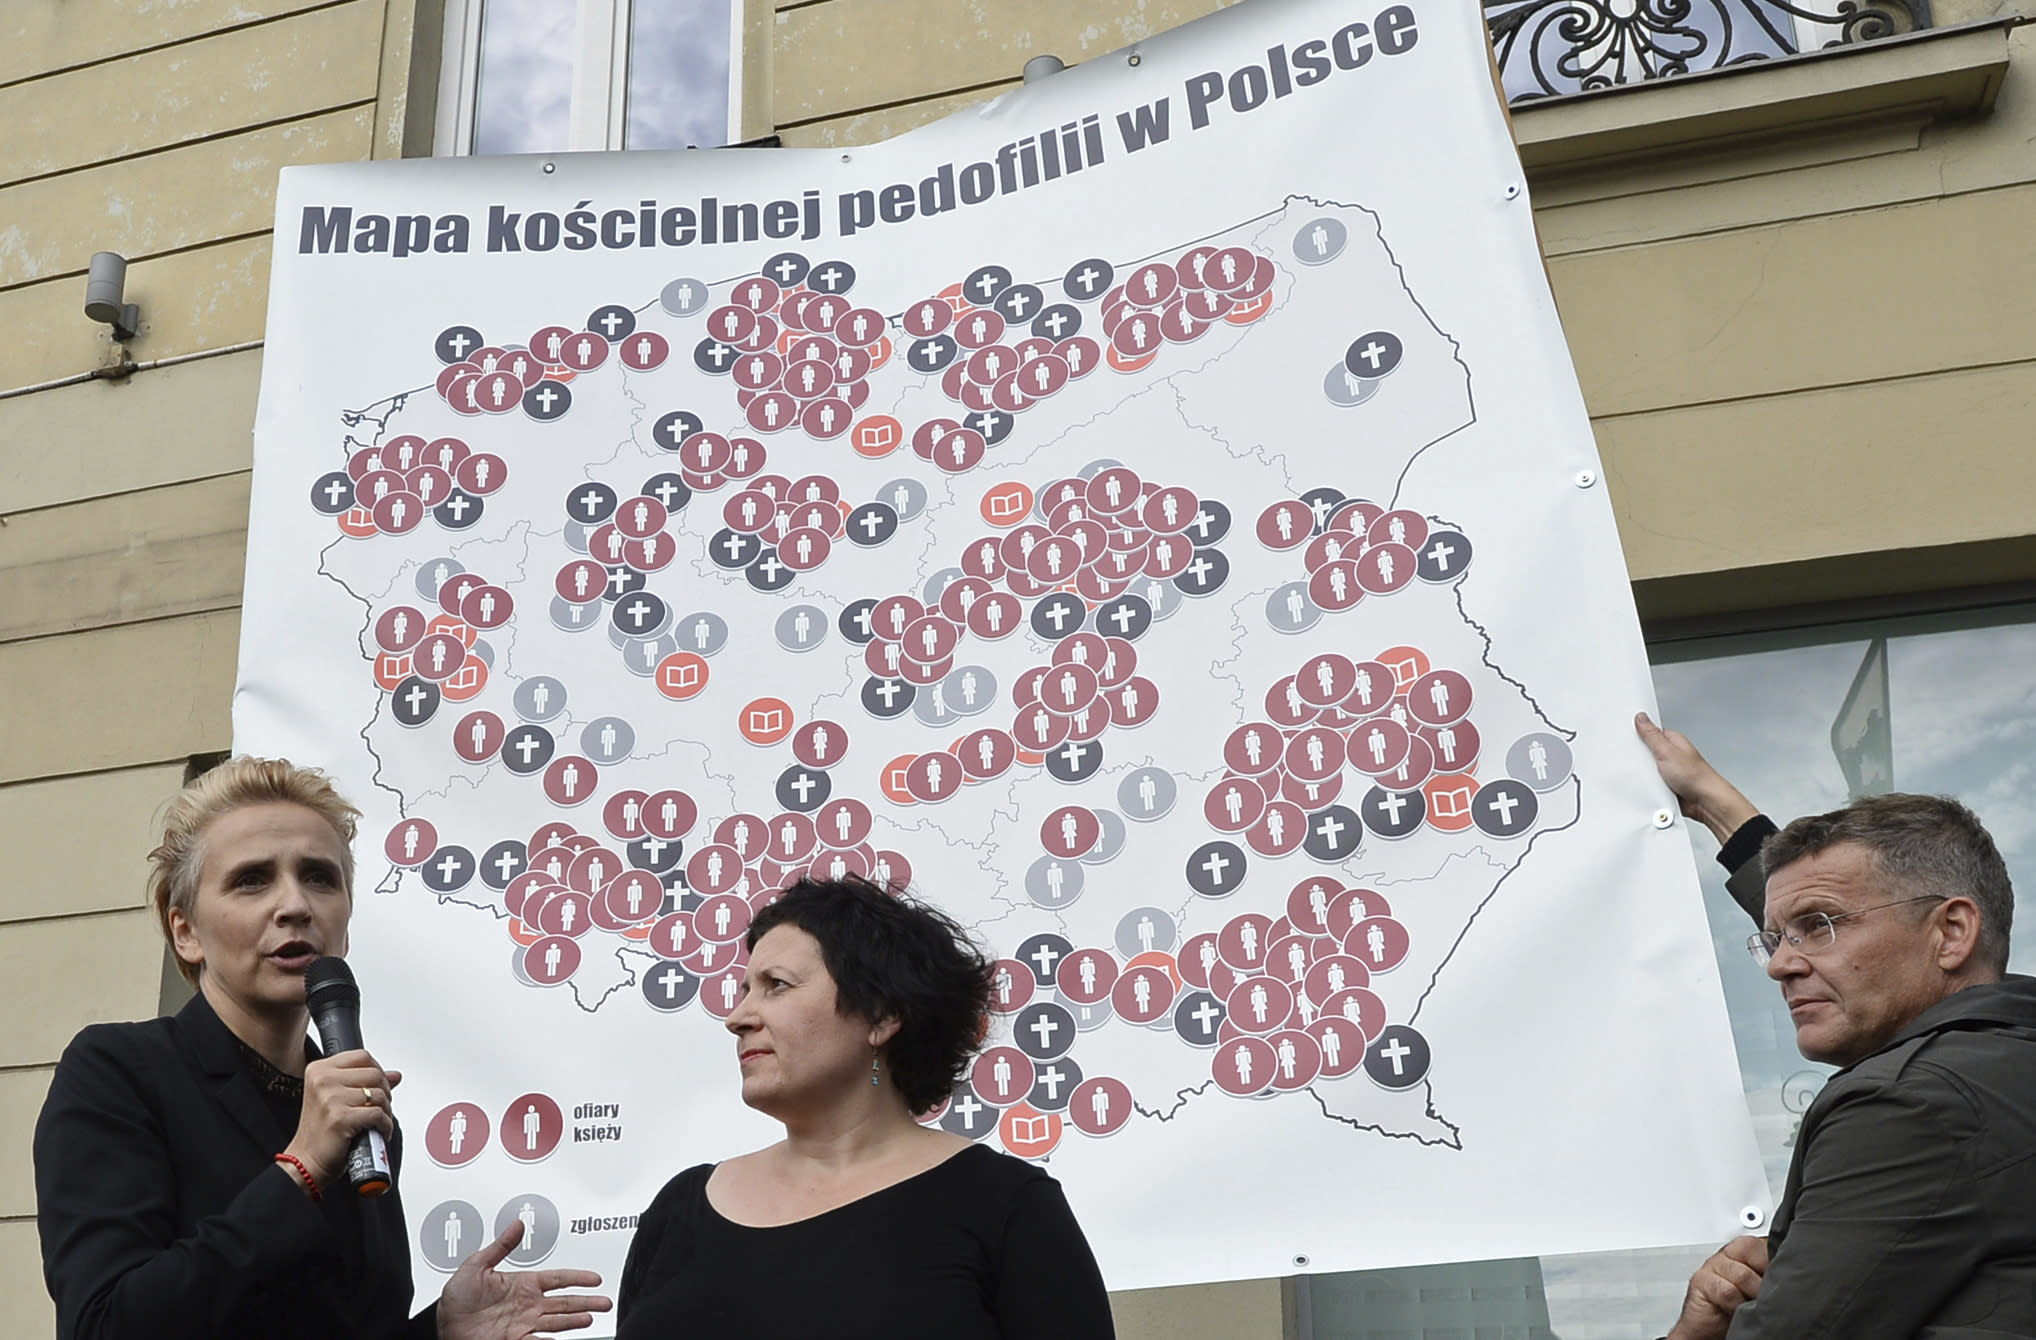 """Protesters present a map of Poland with 255 documented cases of sexual abuse of minors by the country's Catholic priests, during a demonstration in Warsaw, Poland, Sunday, Oct. 7, 2018, demanding the church to stop protecting pedophile priests. The writing on the map reads: """"Map of Church Pedophilia in Poland"""". (AP Photo/Alik Keplicz)"""